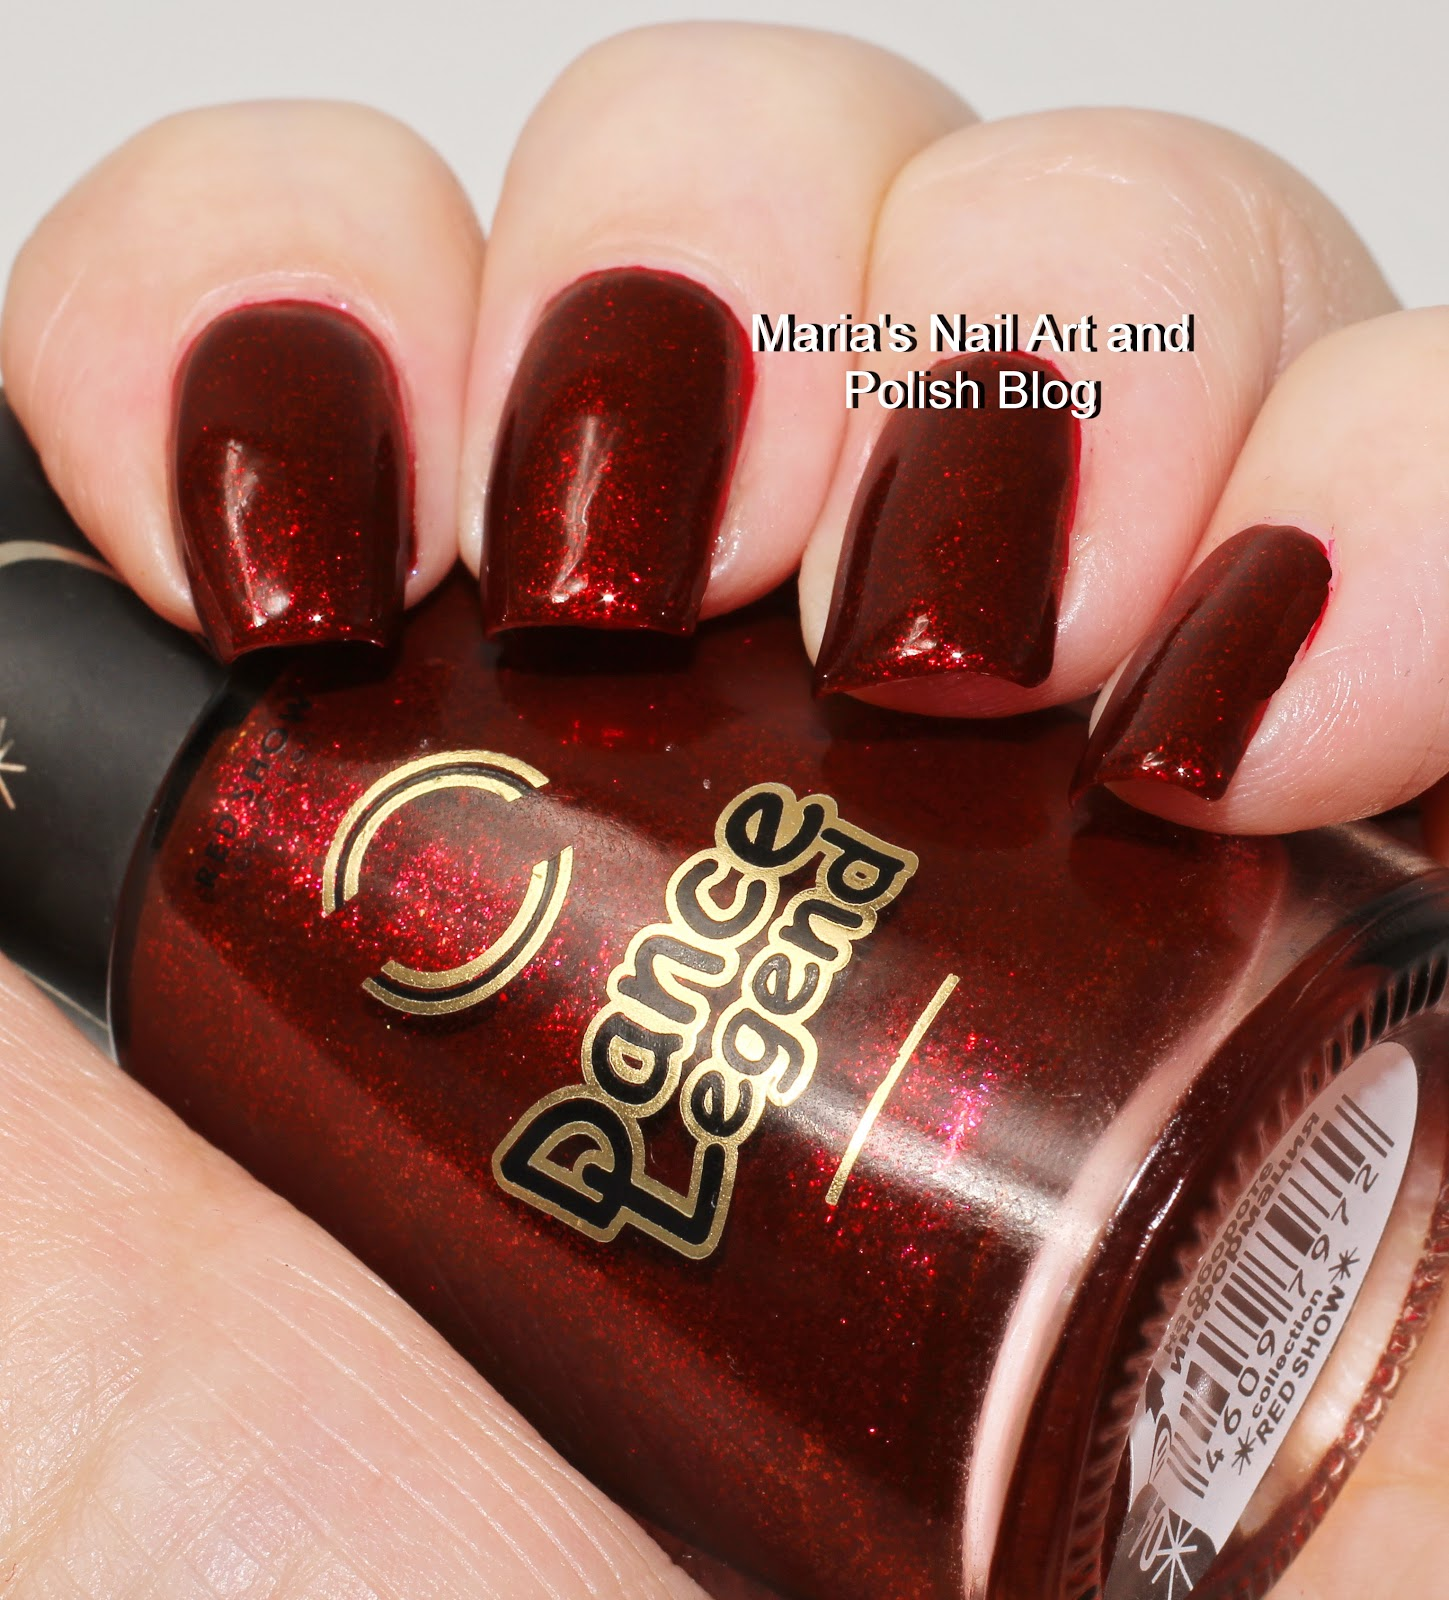 Marias Nail Art And Polish Blog Flushed With Stripes And: Marias Nail Art And Polish Blog: Dance Legend Red Show 04